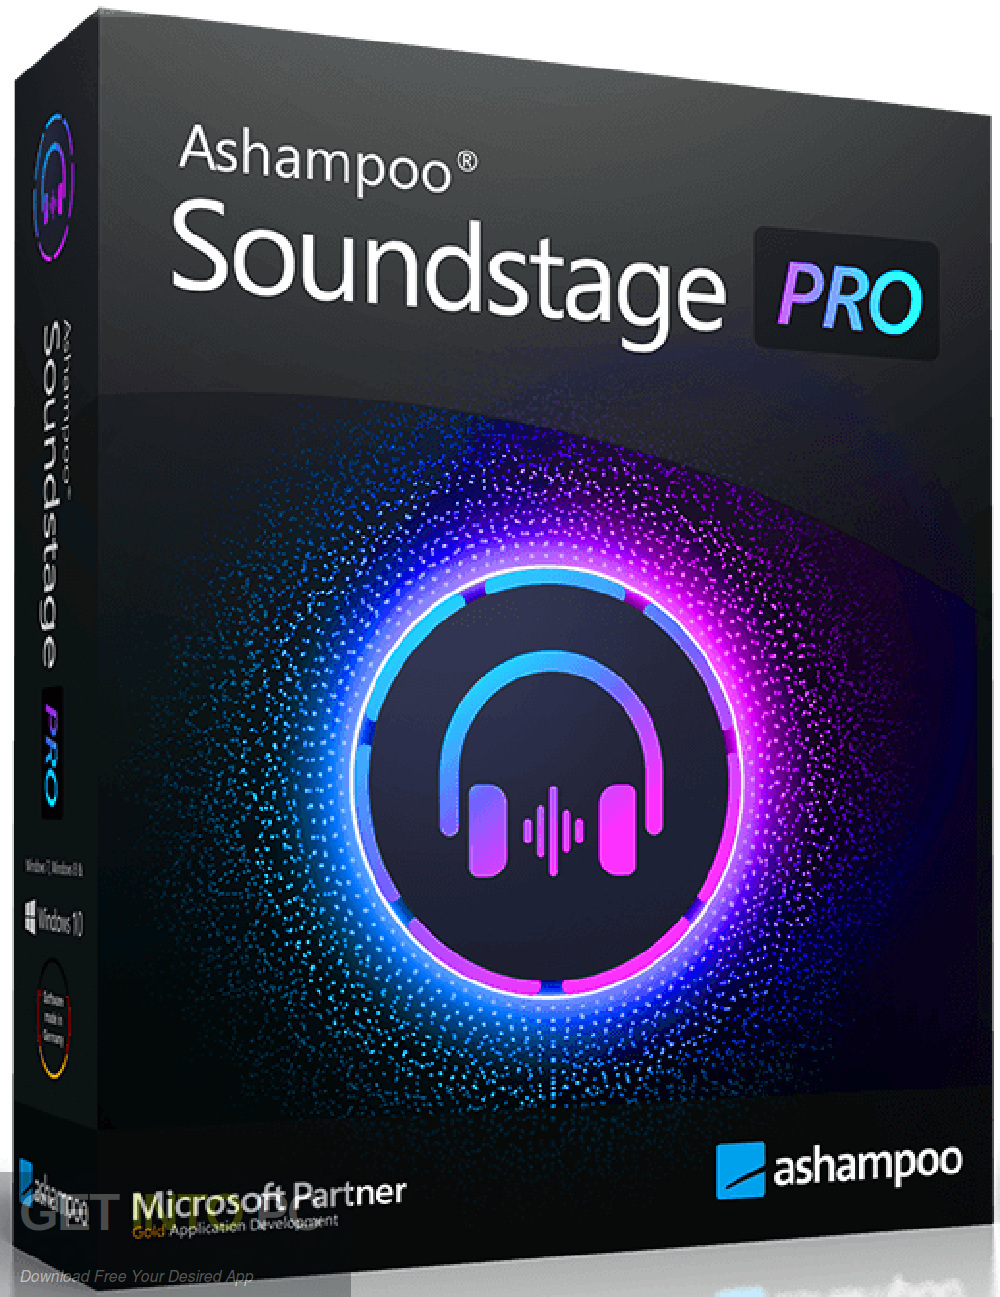 Ashampoo Soundstage Pro Free Download-GetintoPC.com